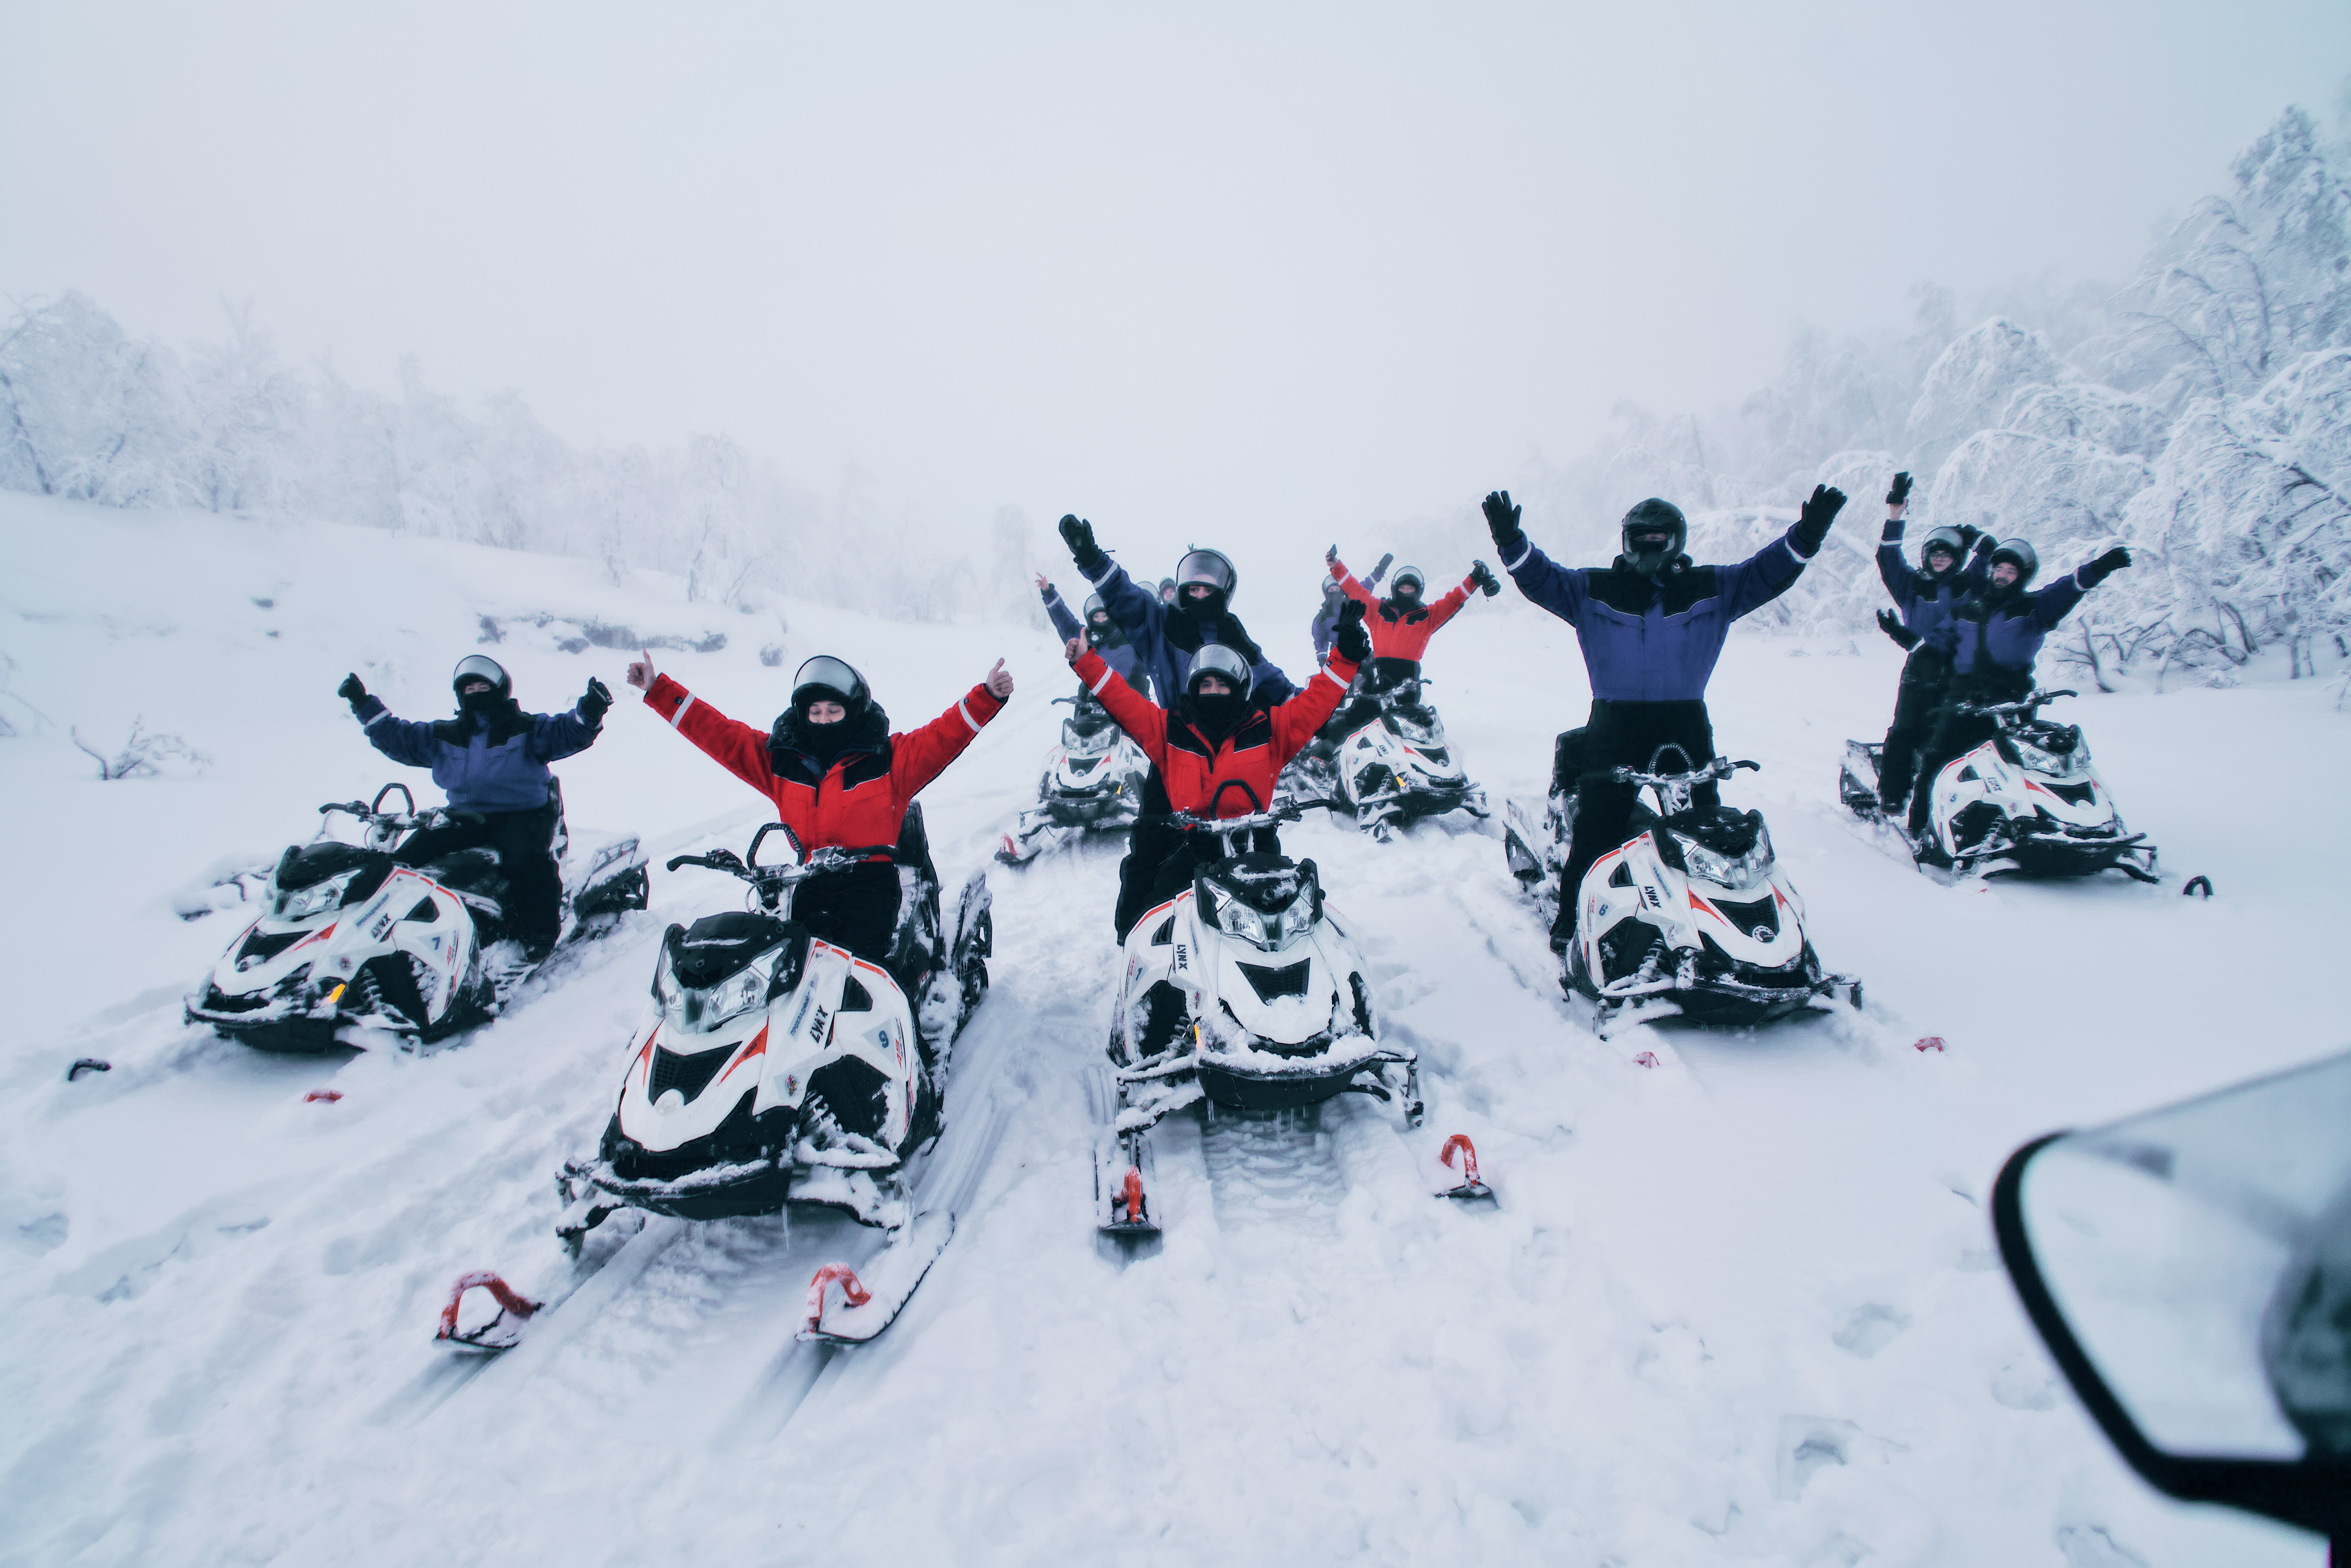 Ride on the snowmobiles